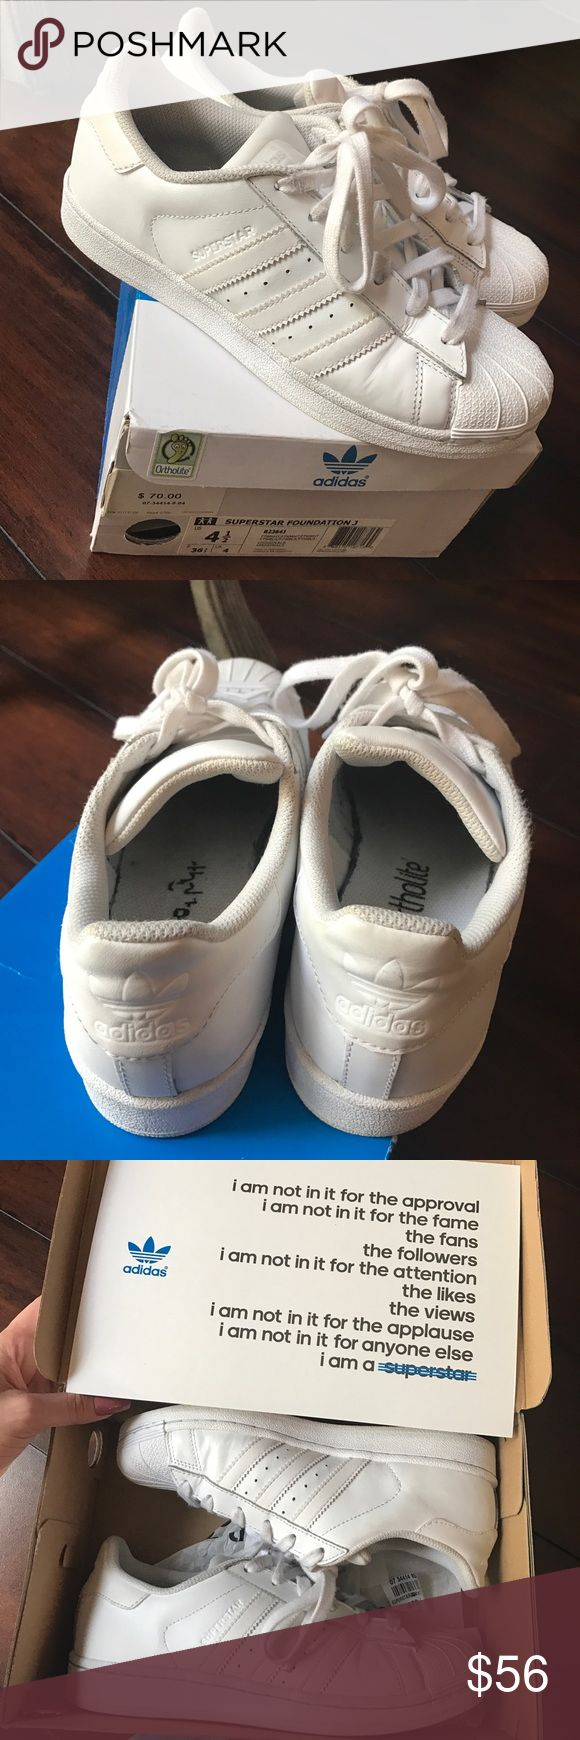 Adidas Superstar white size 4.5 All white adidas superstar, size 4.5 in kids. I am a size 6/6.5 in women's. Great condition only worn a few times. Comes with the box. Adidas Shoes Sneakers